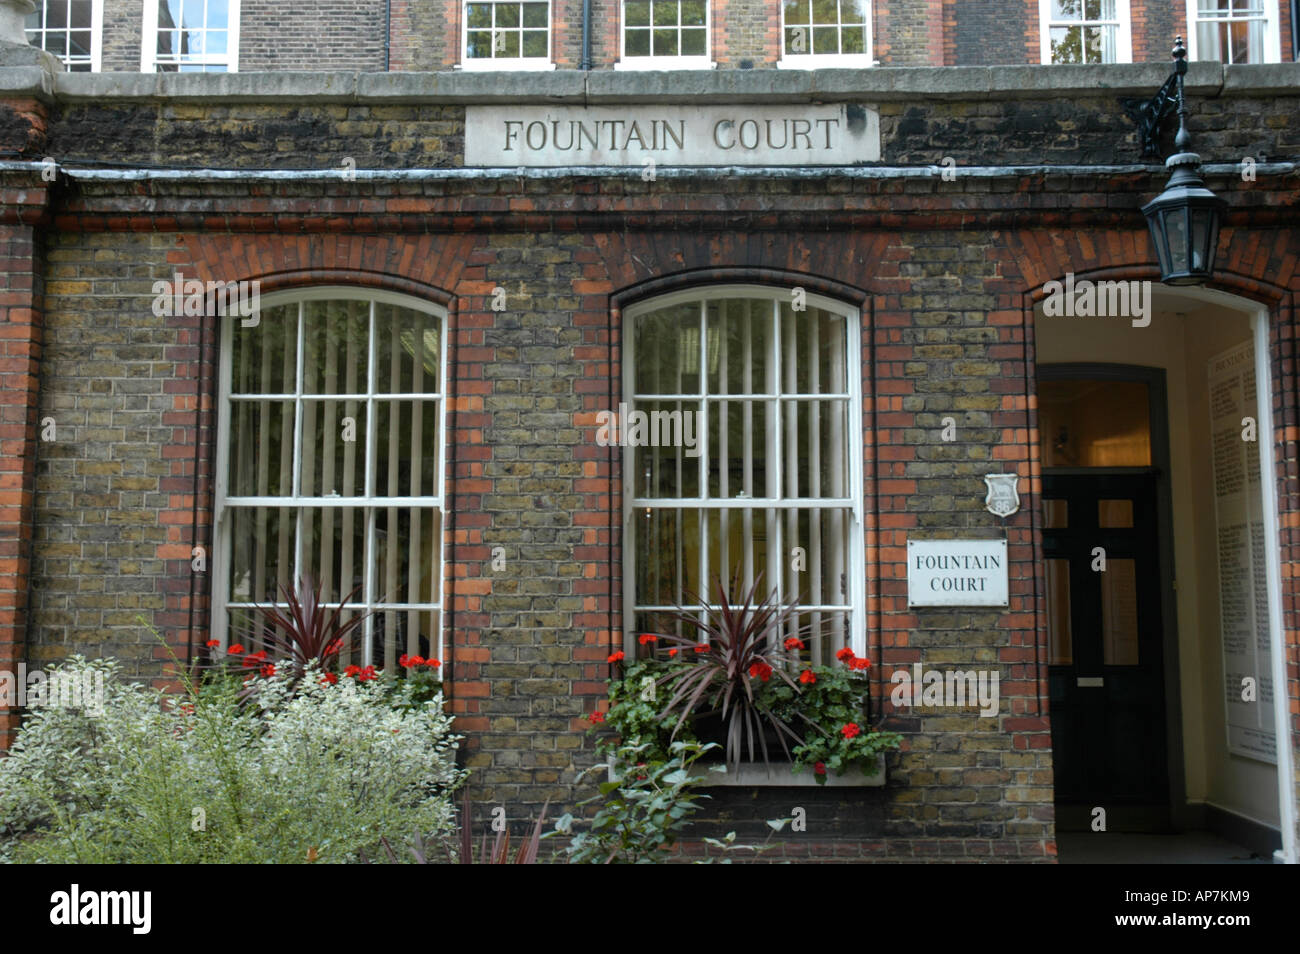 Legal chambers at Fountain Court Inns of the Court London England - Stock Image